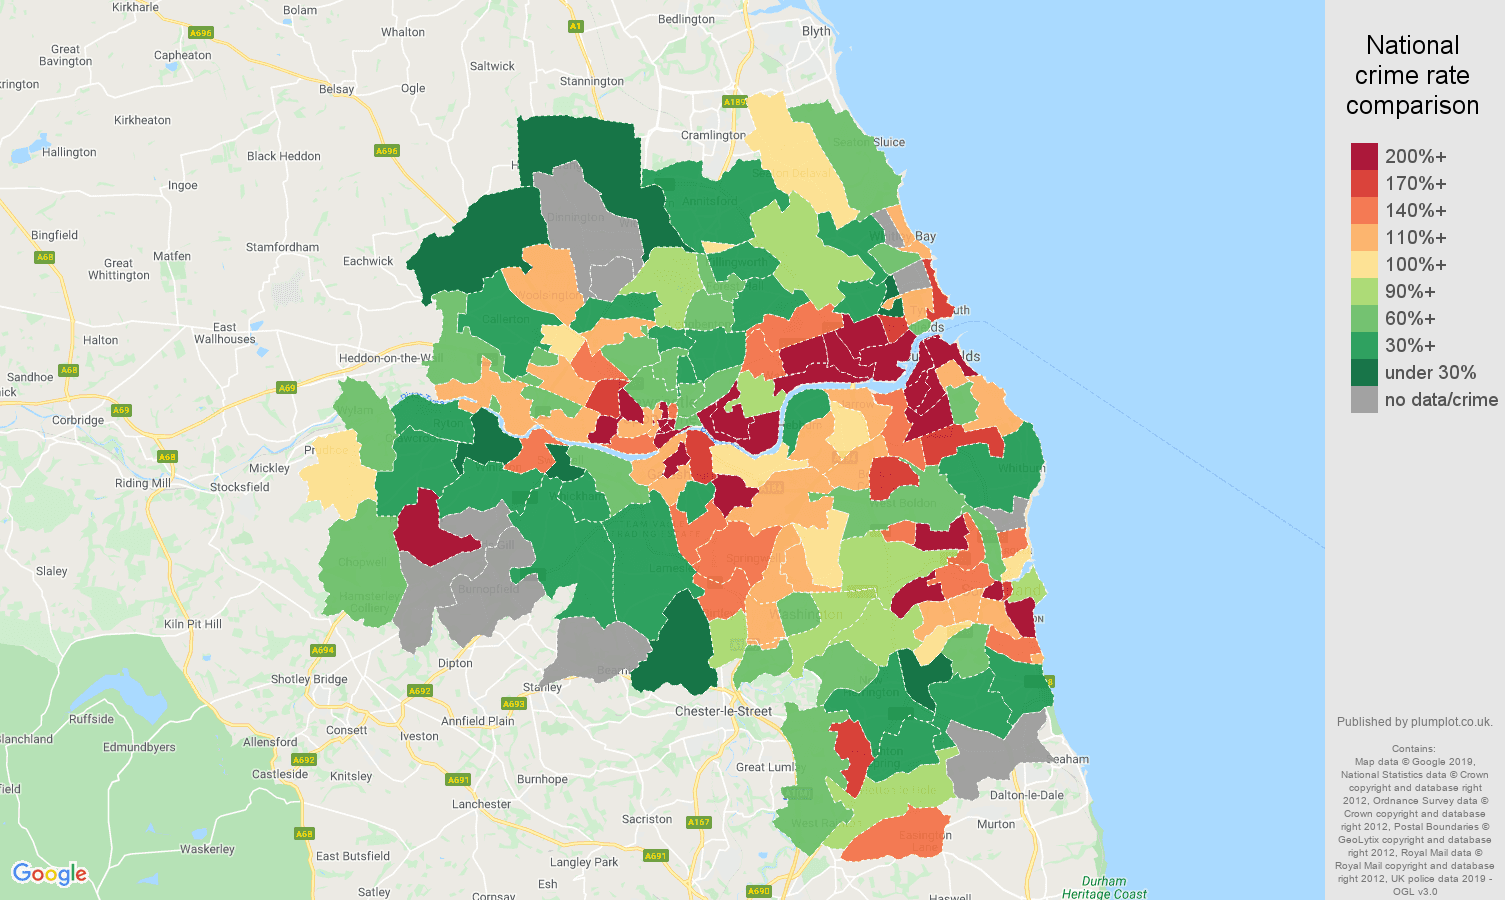 Tyne and Wear possession of weapons crime rate comparison map